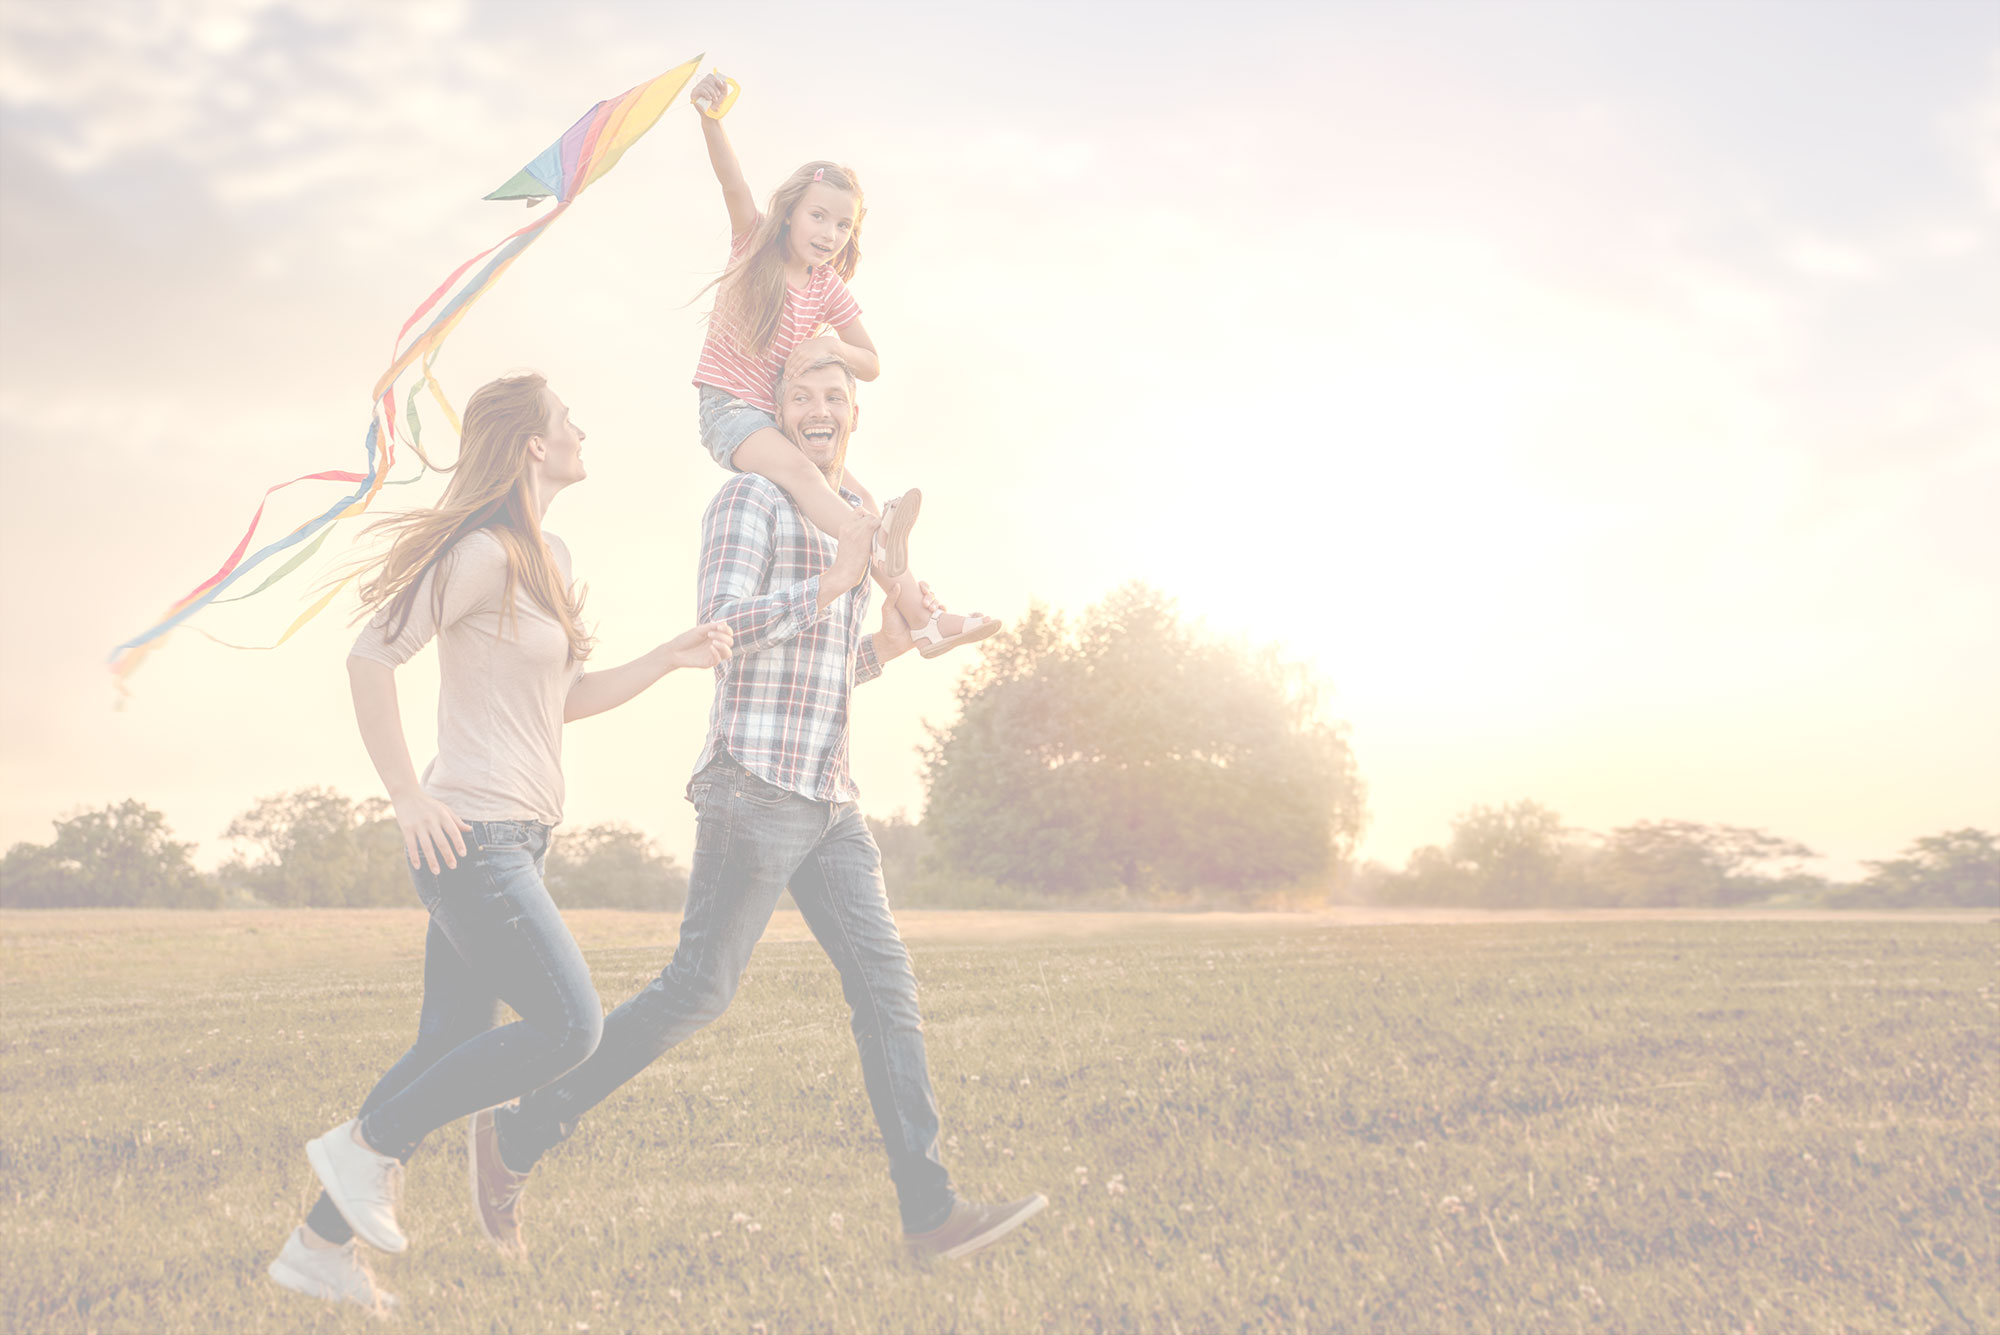 Family flying a kite in a park